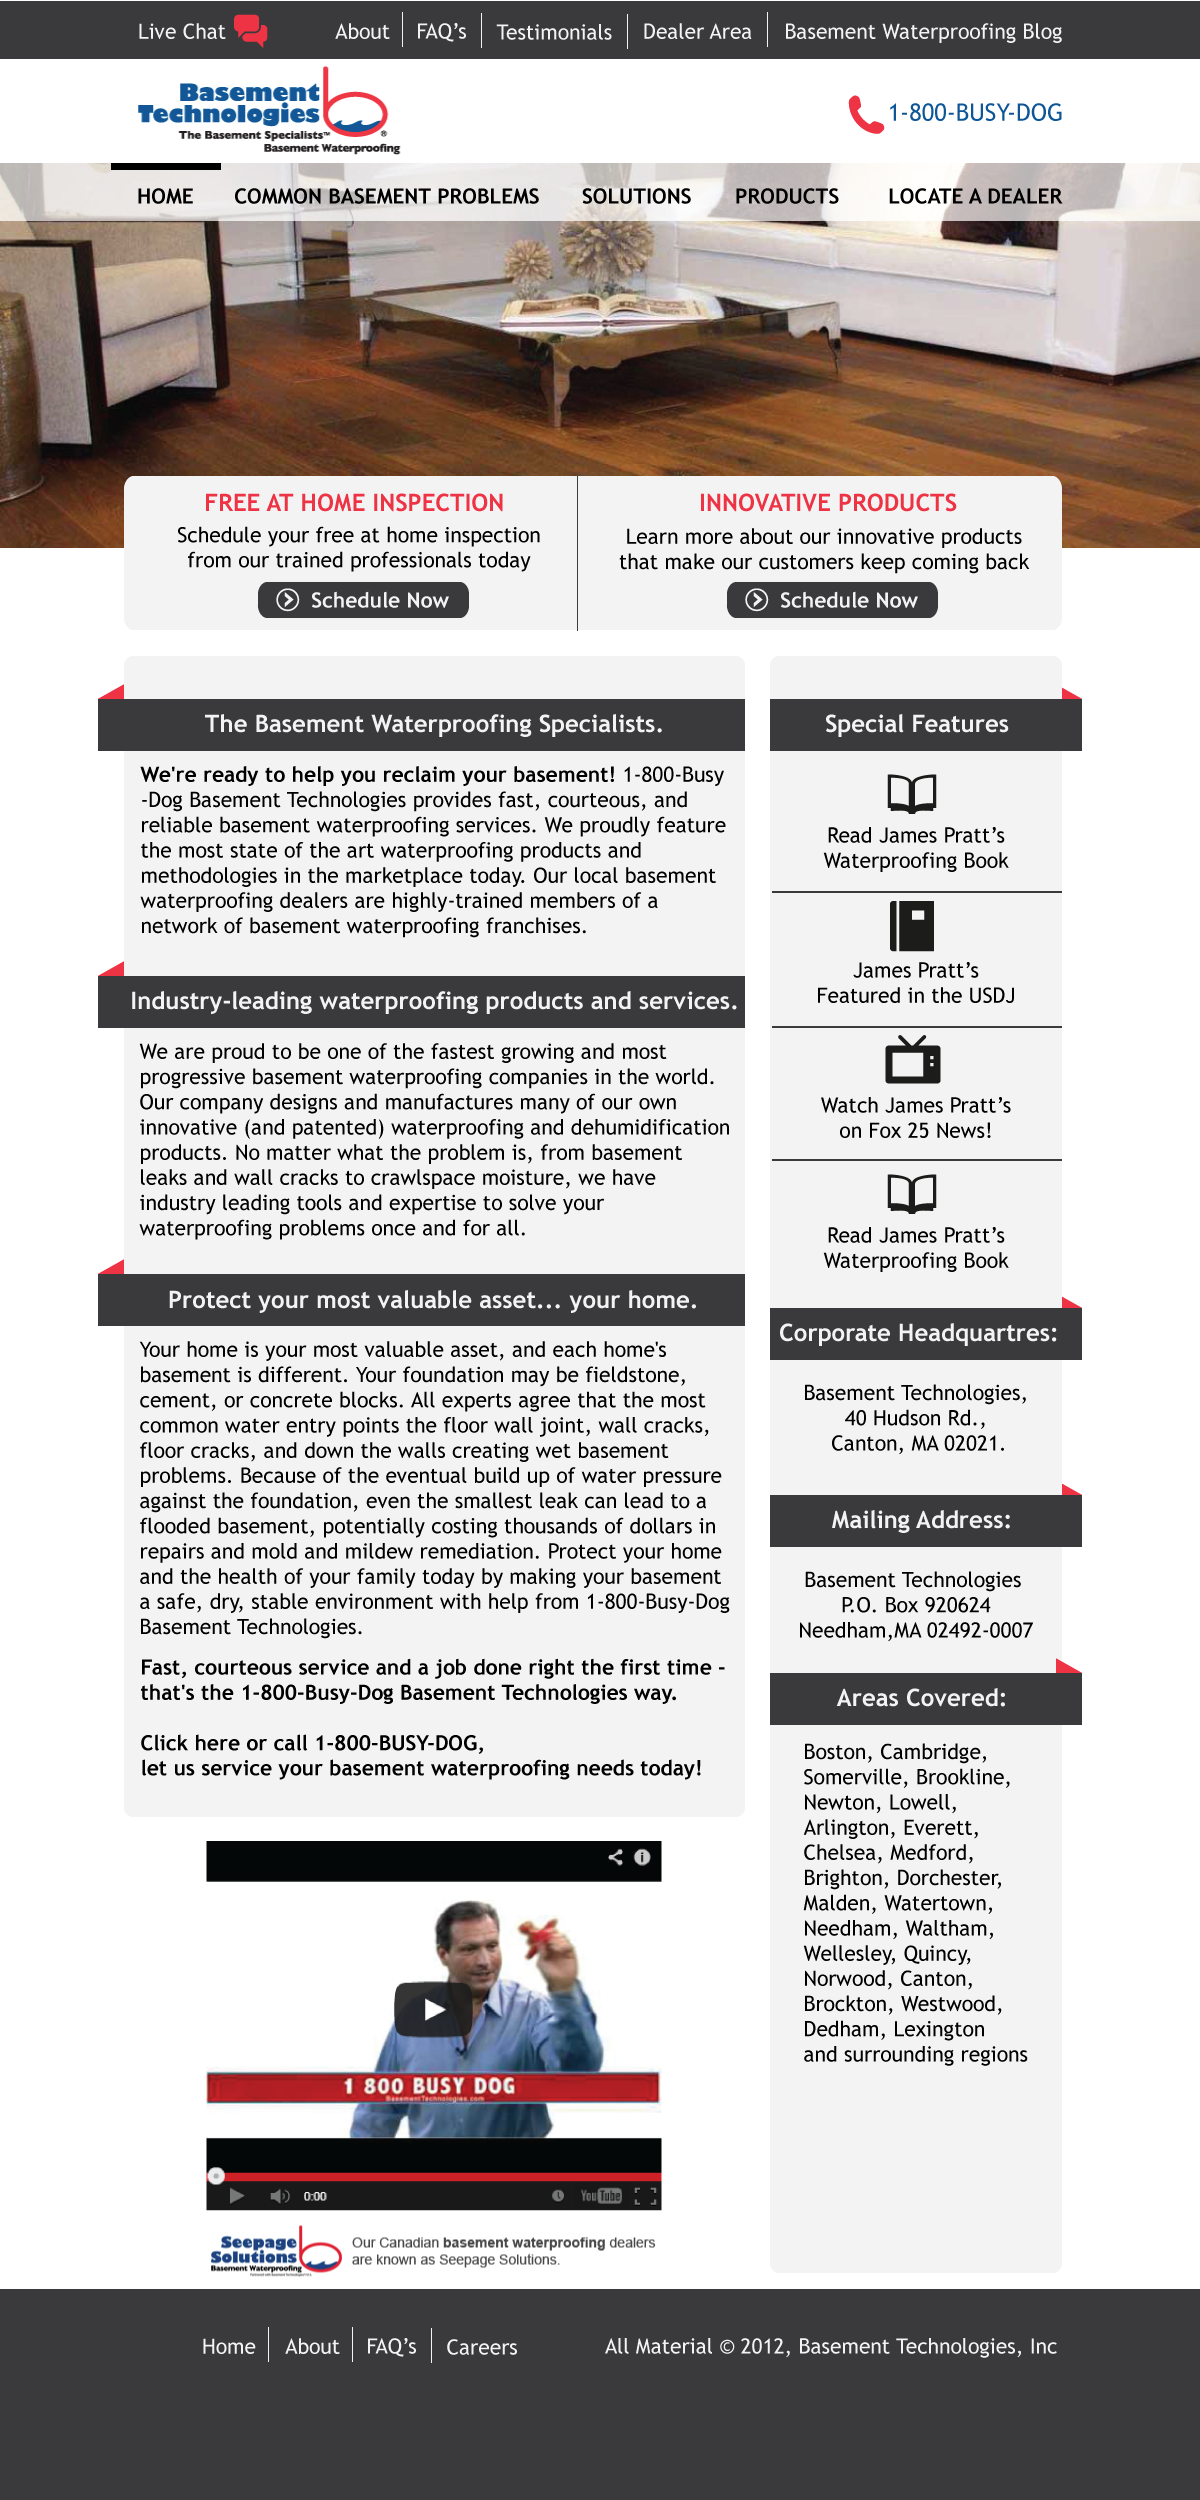 Web Page Design by Mohan Kumar - Entry No. 19 in the Web Page Design Contest Modern Web Page Design for Basement Technologies.